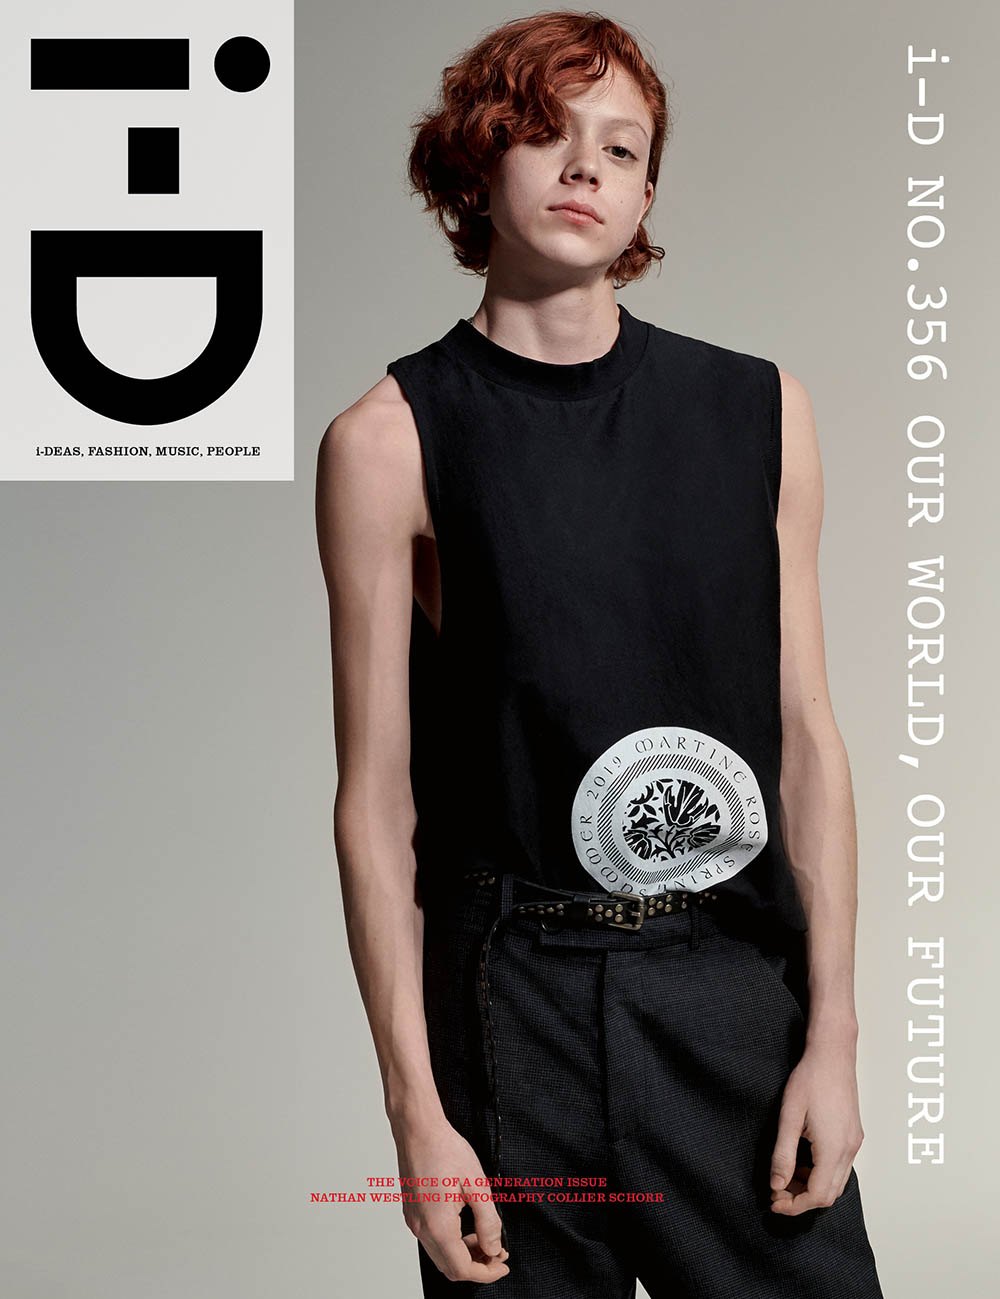 Nathan Westling covers i-D Magazine Summer 2019 by Collier Schorr